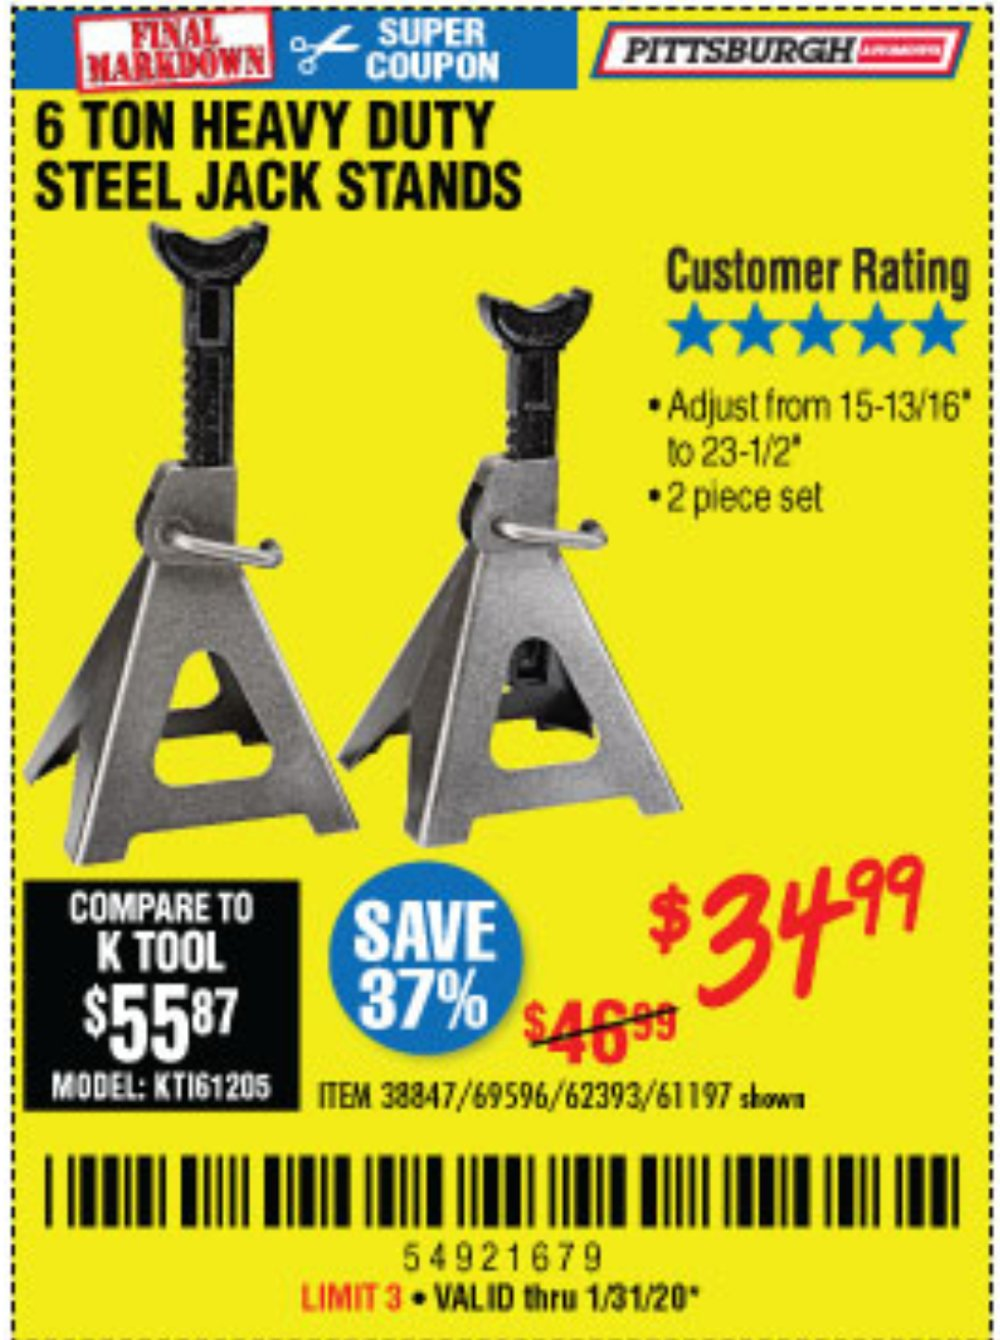 Harbor Freight Coupon, HF Coupons - 6 Ton Heavy Duty Jack Stands